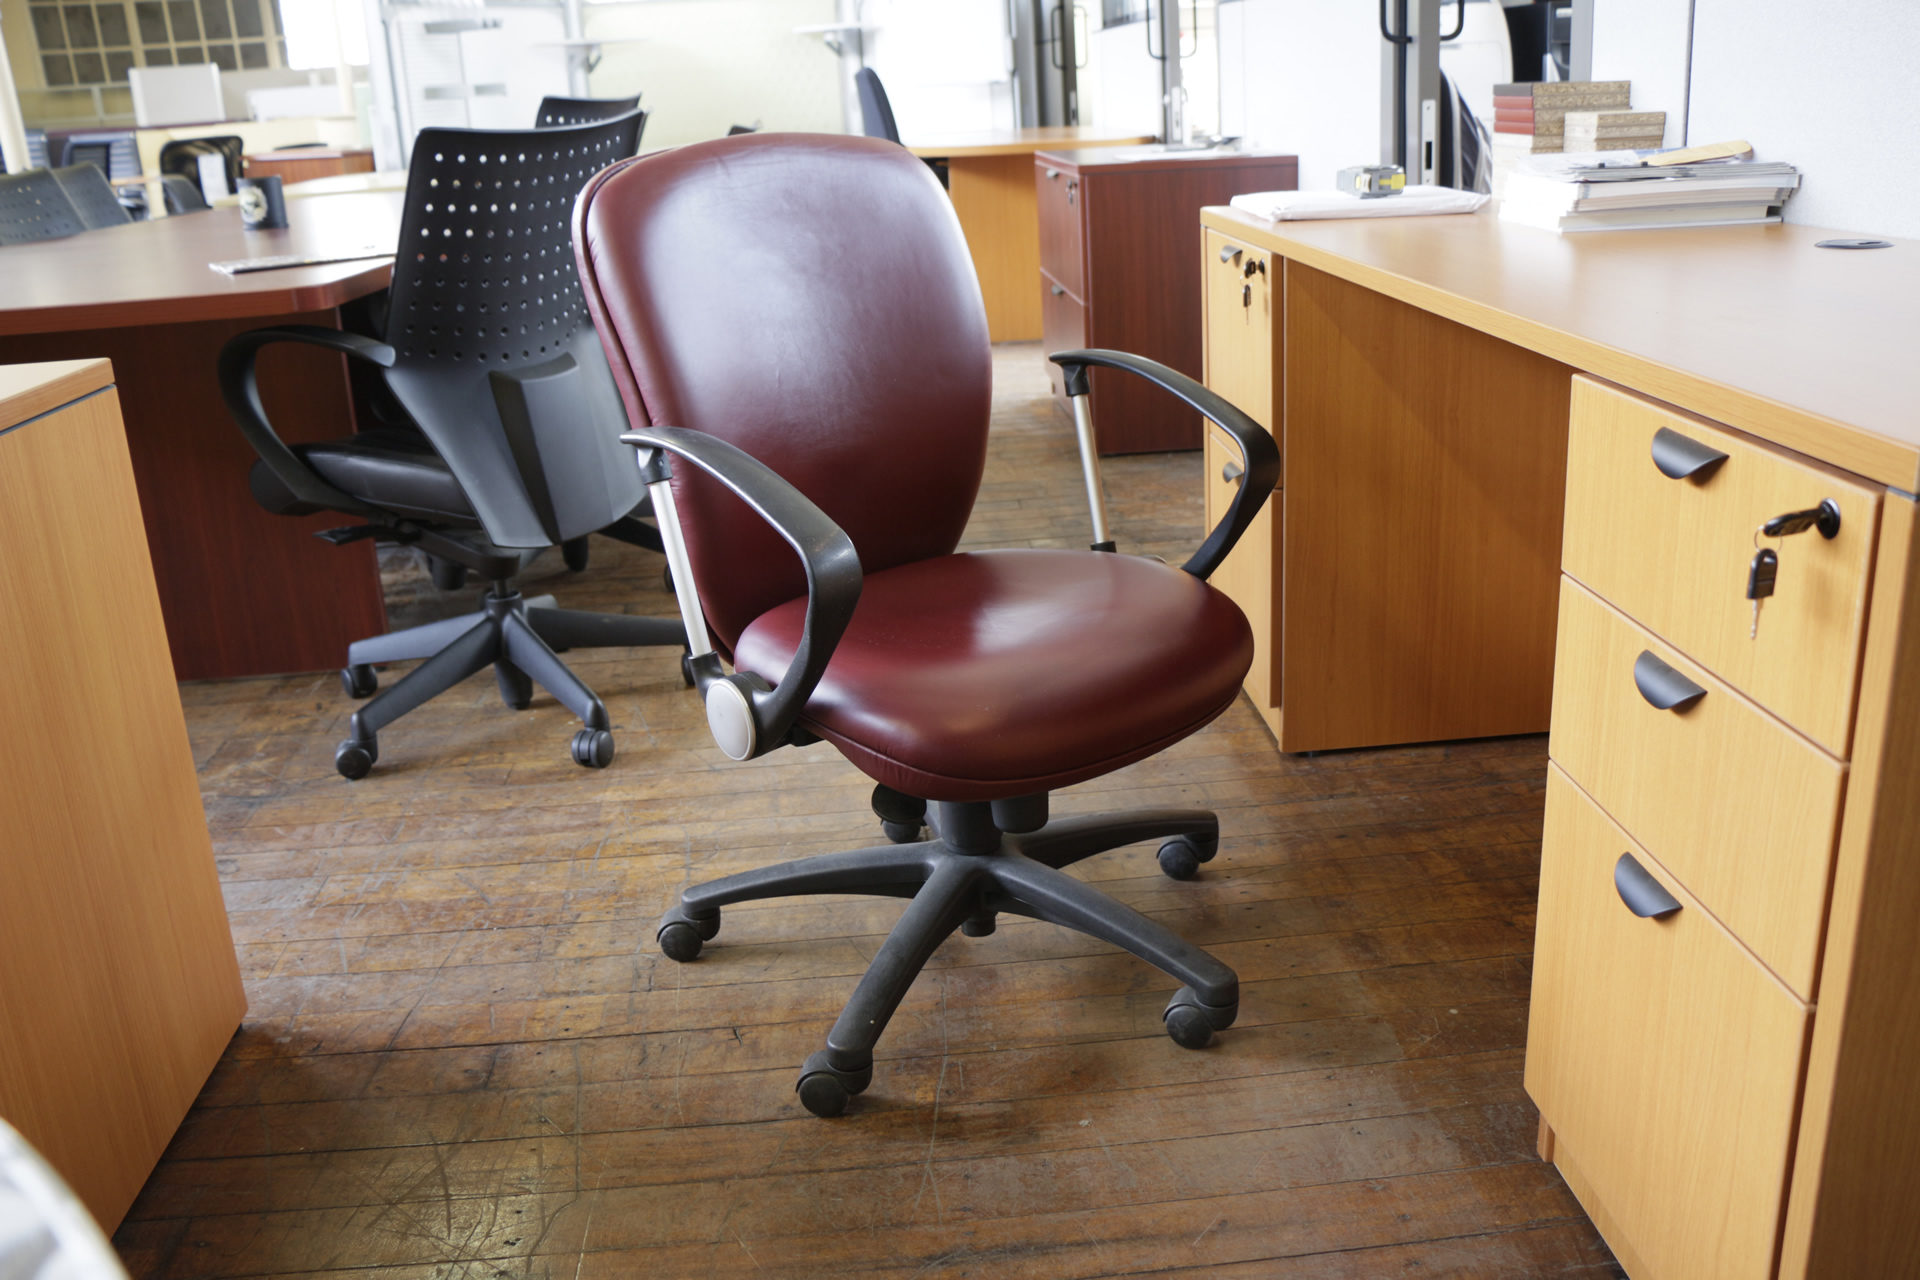 peartreeofficefurniture_peartreeofficefurniture_mg_3278.jpg